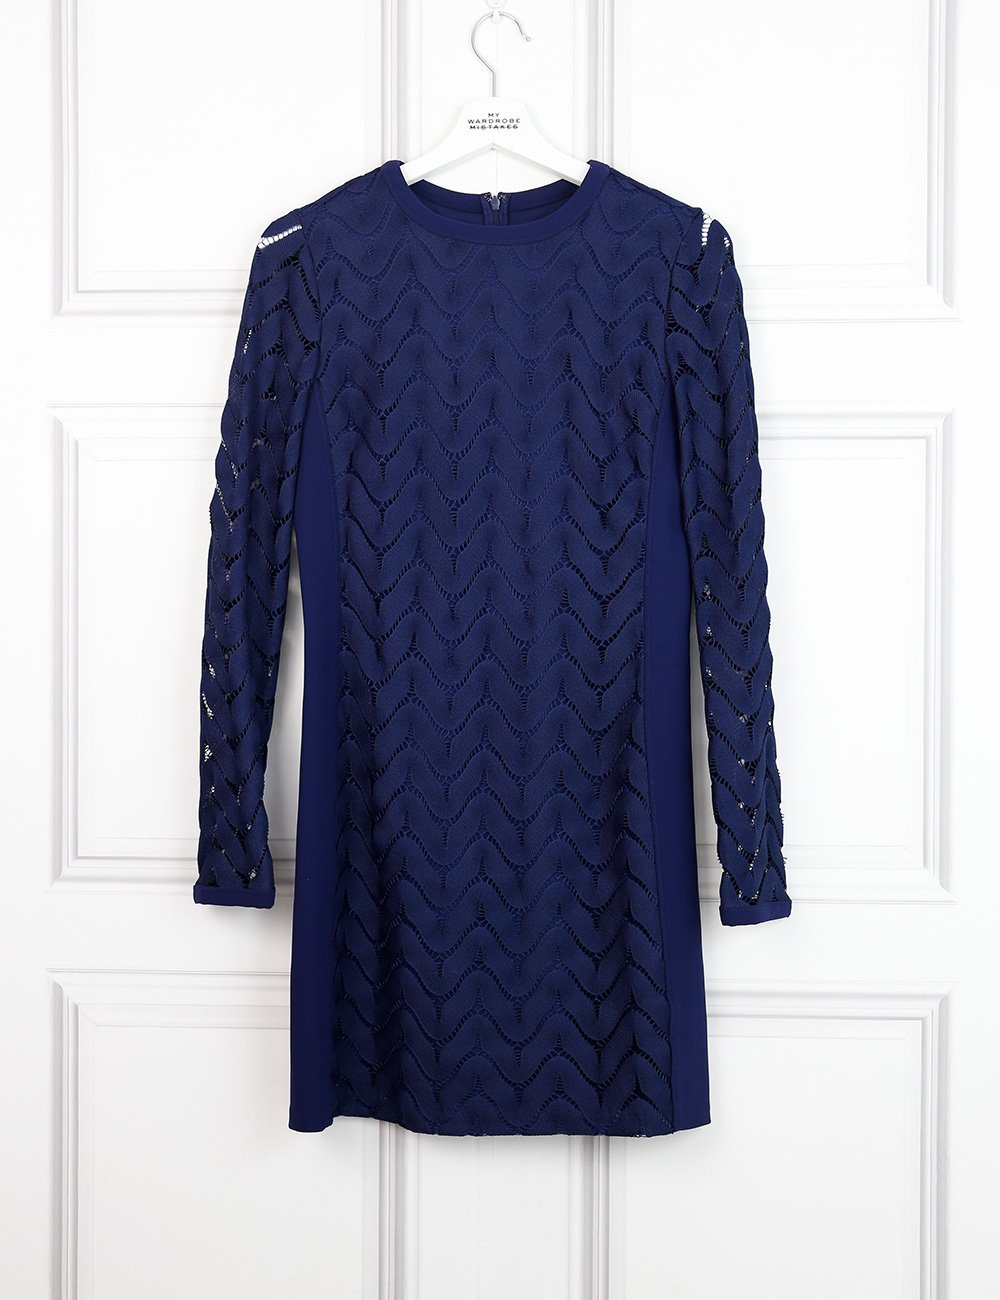 Diane von Furstenberg blue fitted dress with lace details 8UK- My Wardrobe Mistakes